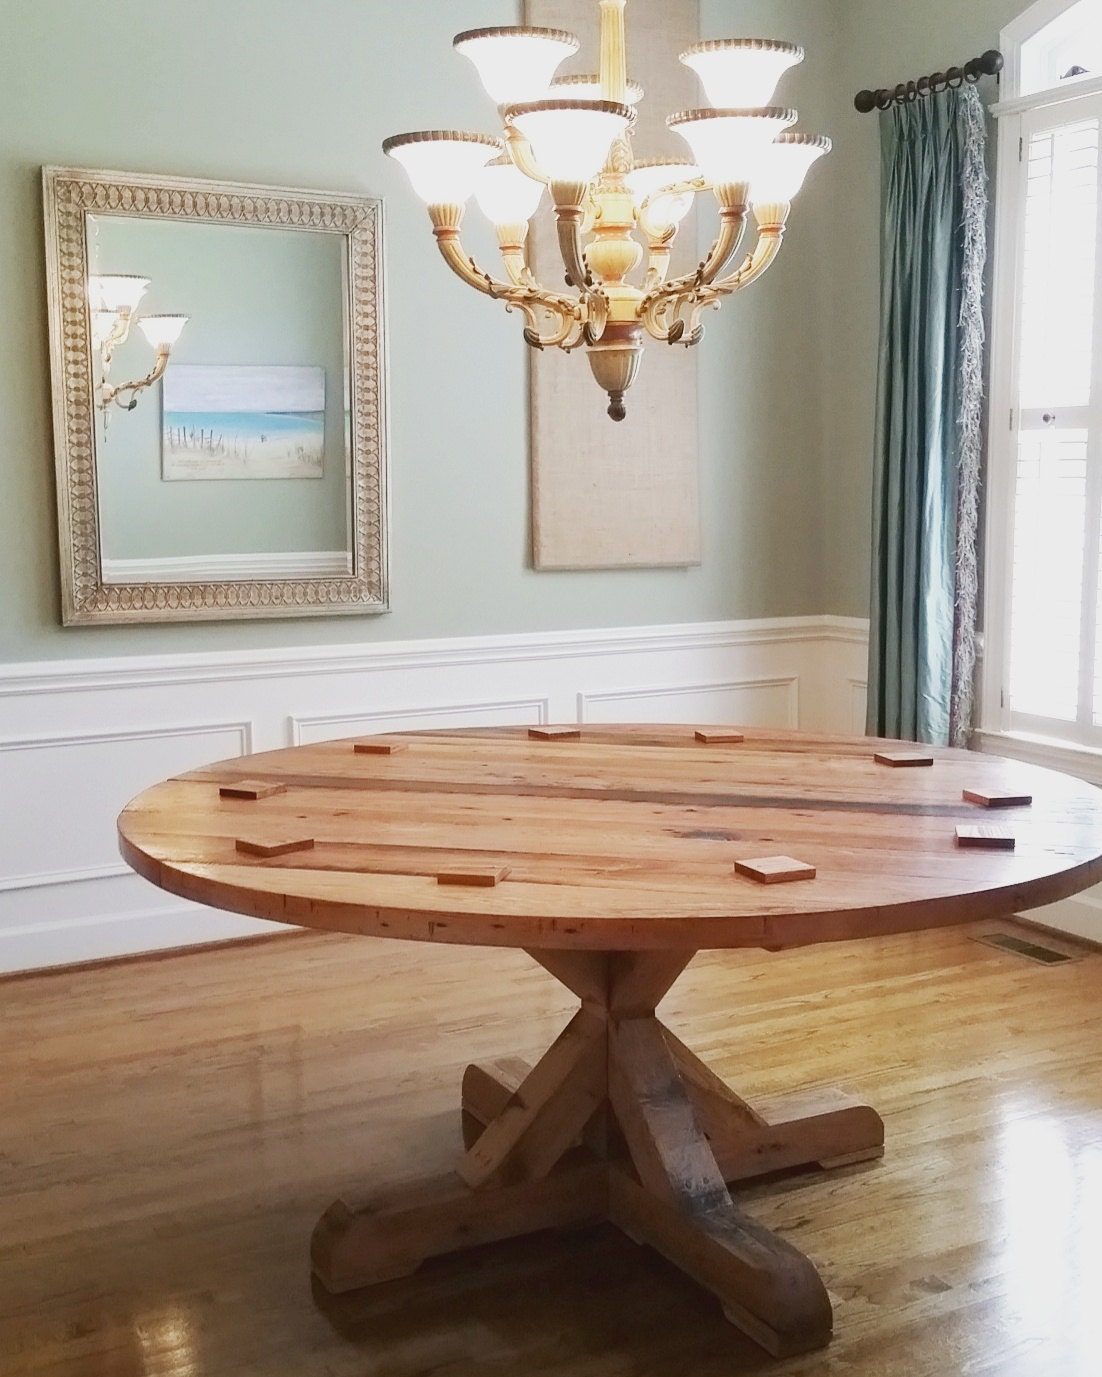 Round Solid Wood Dining Table: Round Pedestal Dining Table Solid Wood Oak Pine Rustic